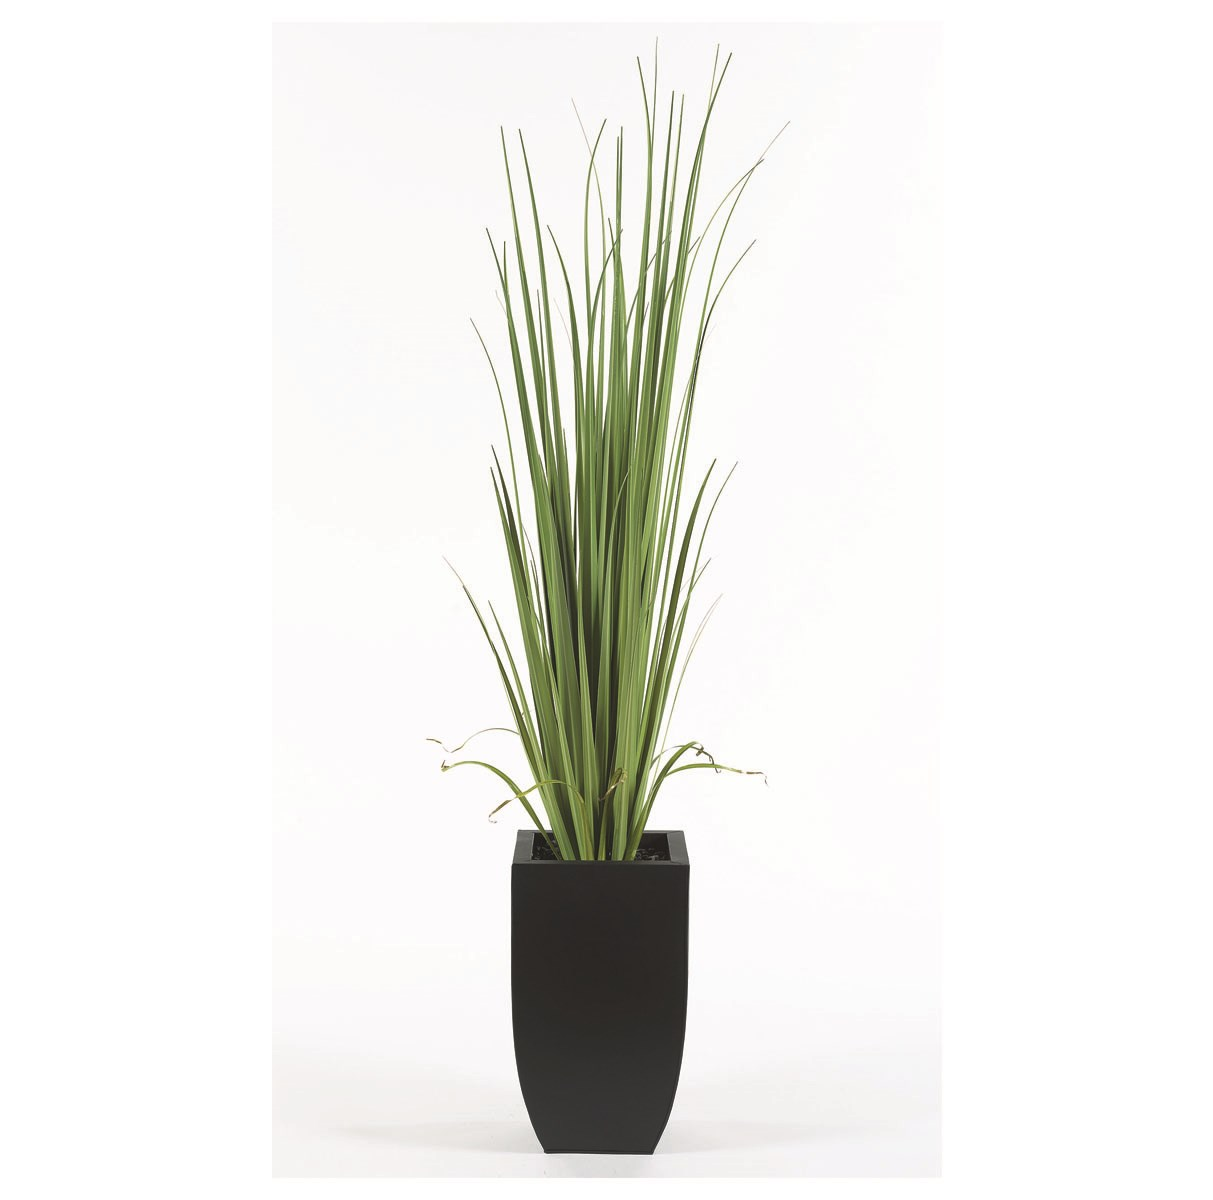 6′ Tall Contemporary Grass Floor Plant